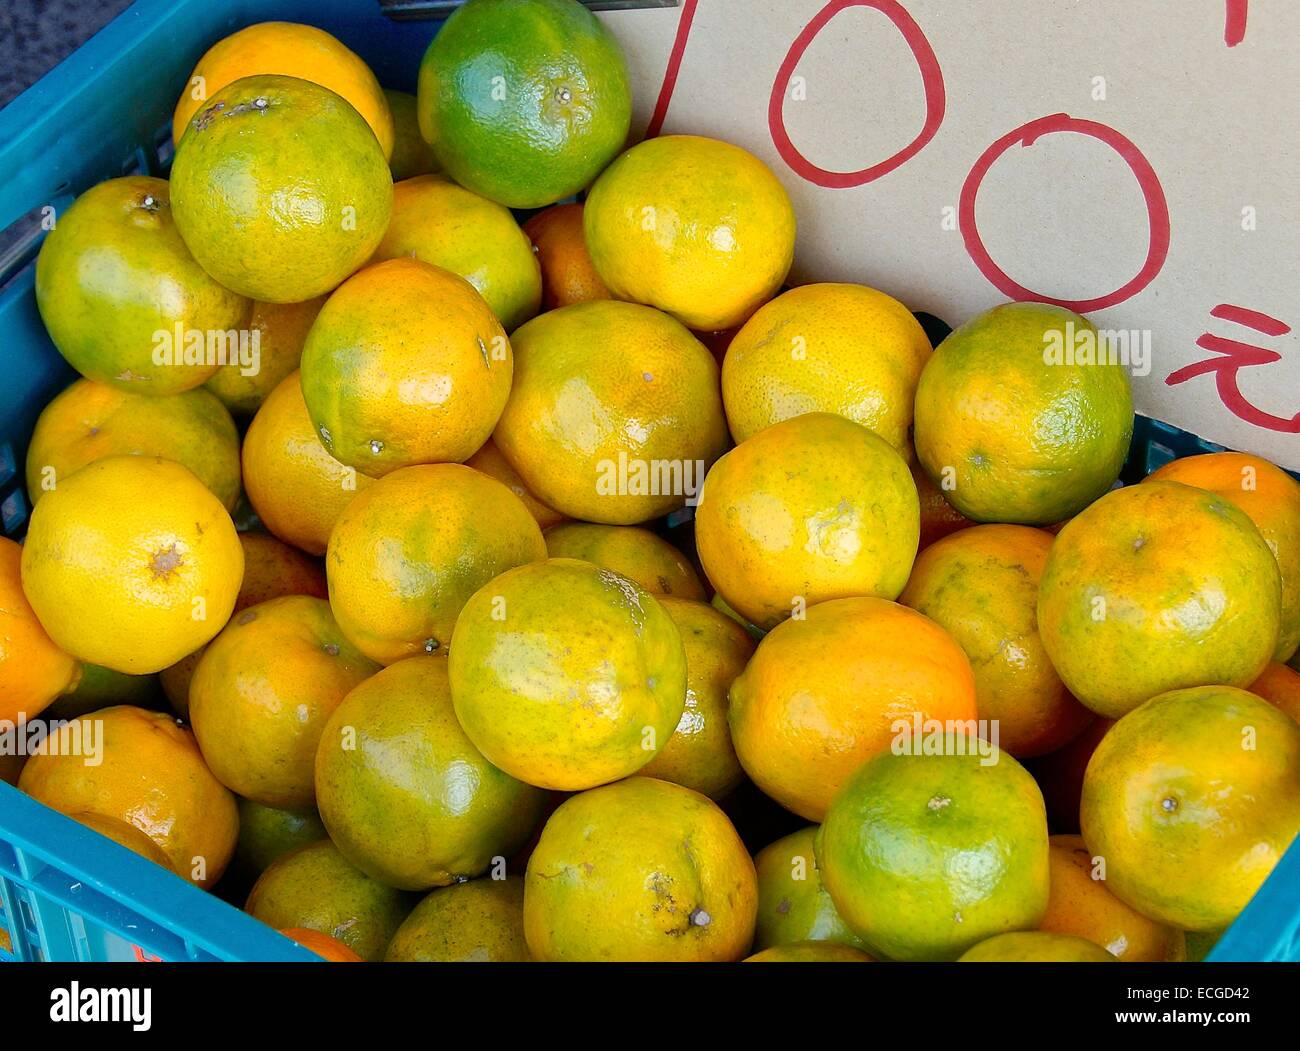 Tropical tangerines on sale at fruit market - Stock Image